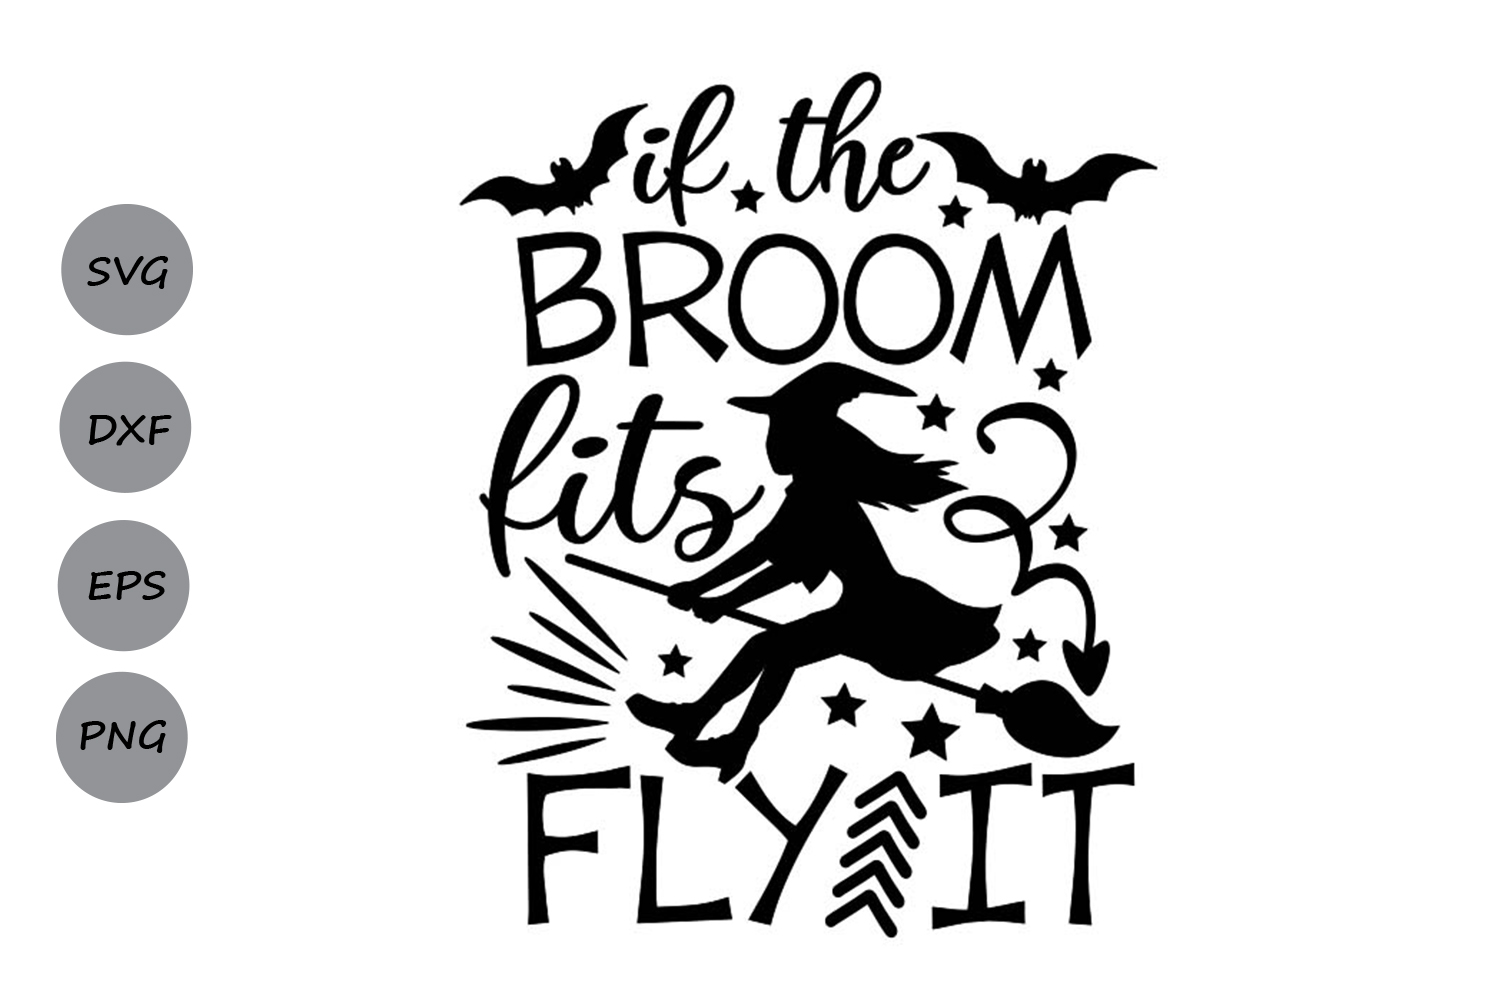 Download Free If The Broom Fits Fly It Graphic By Cosmosfineart Creative Fabrica for Cricut Explore, Silhouette and other cutting machines.